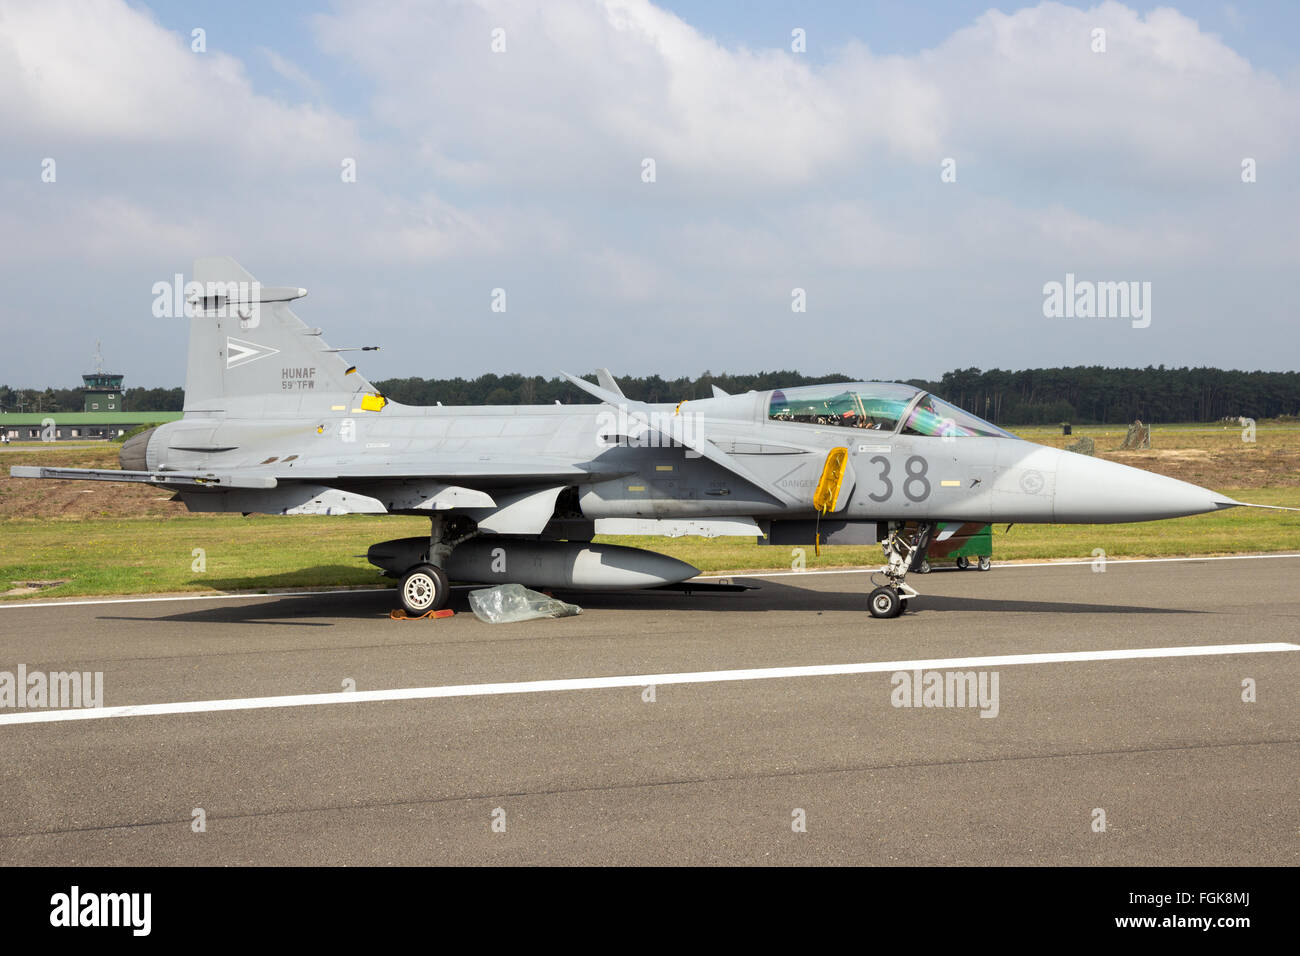 Hungarian Air Force SAAB JAS-39 Gripen fighter jet on the tarmac of Kleine Brogel Airbase - Stock Image